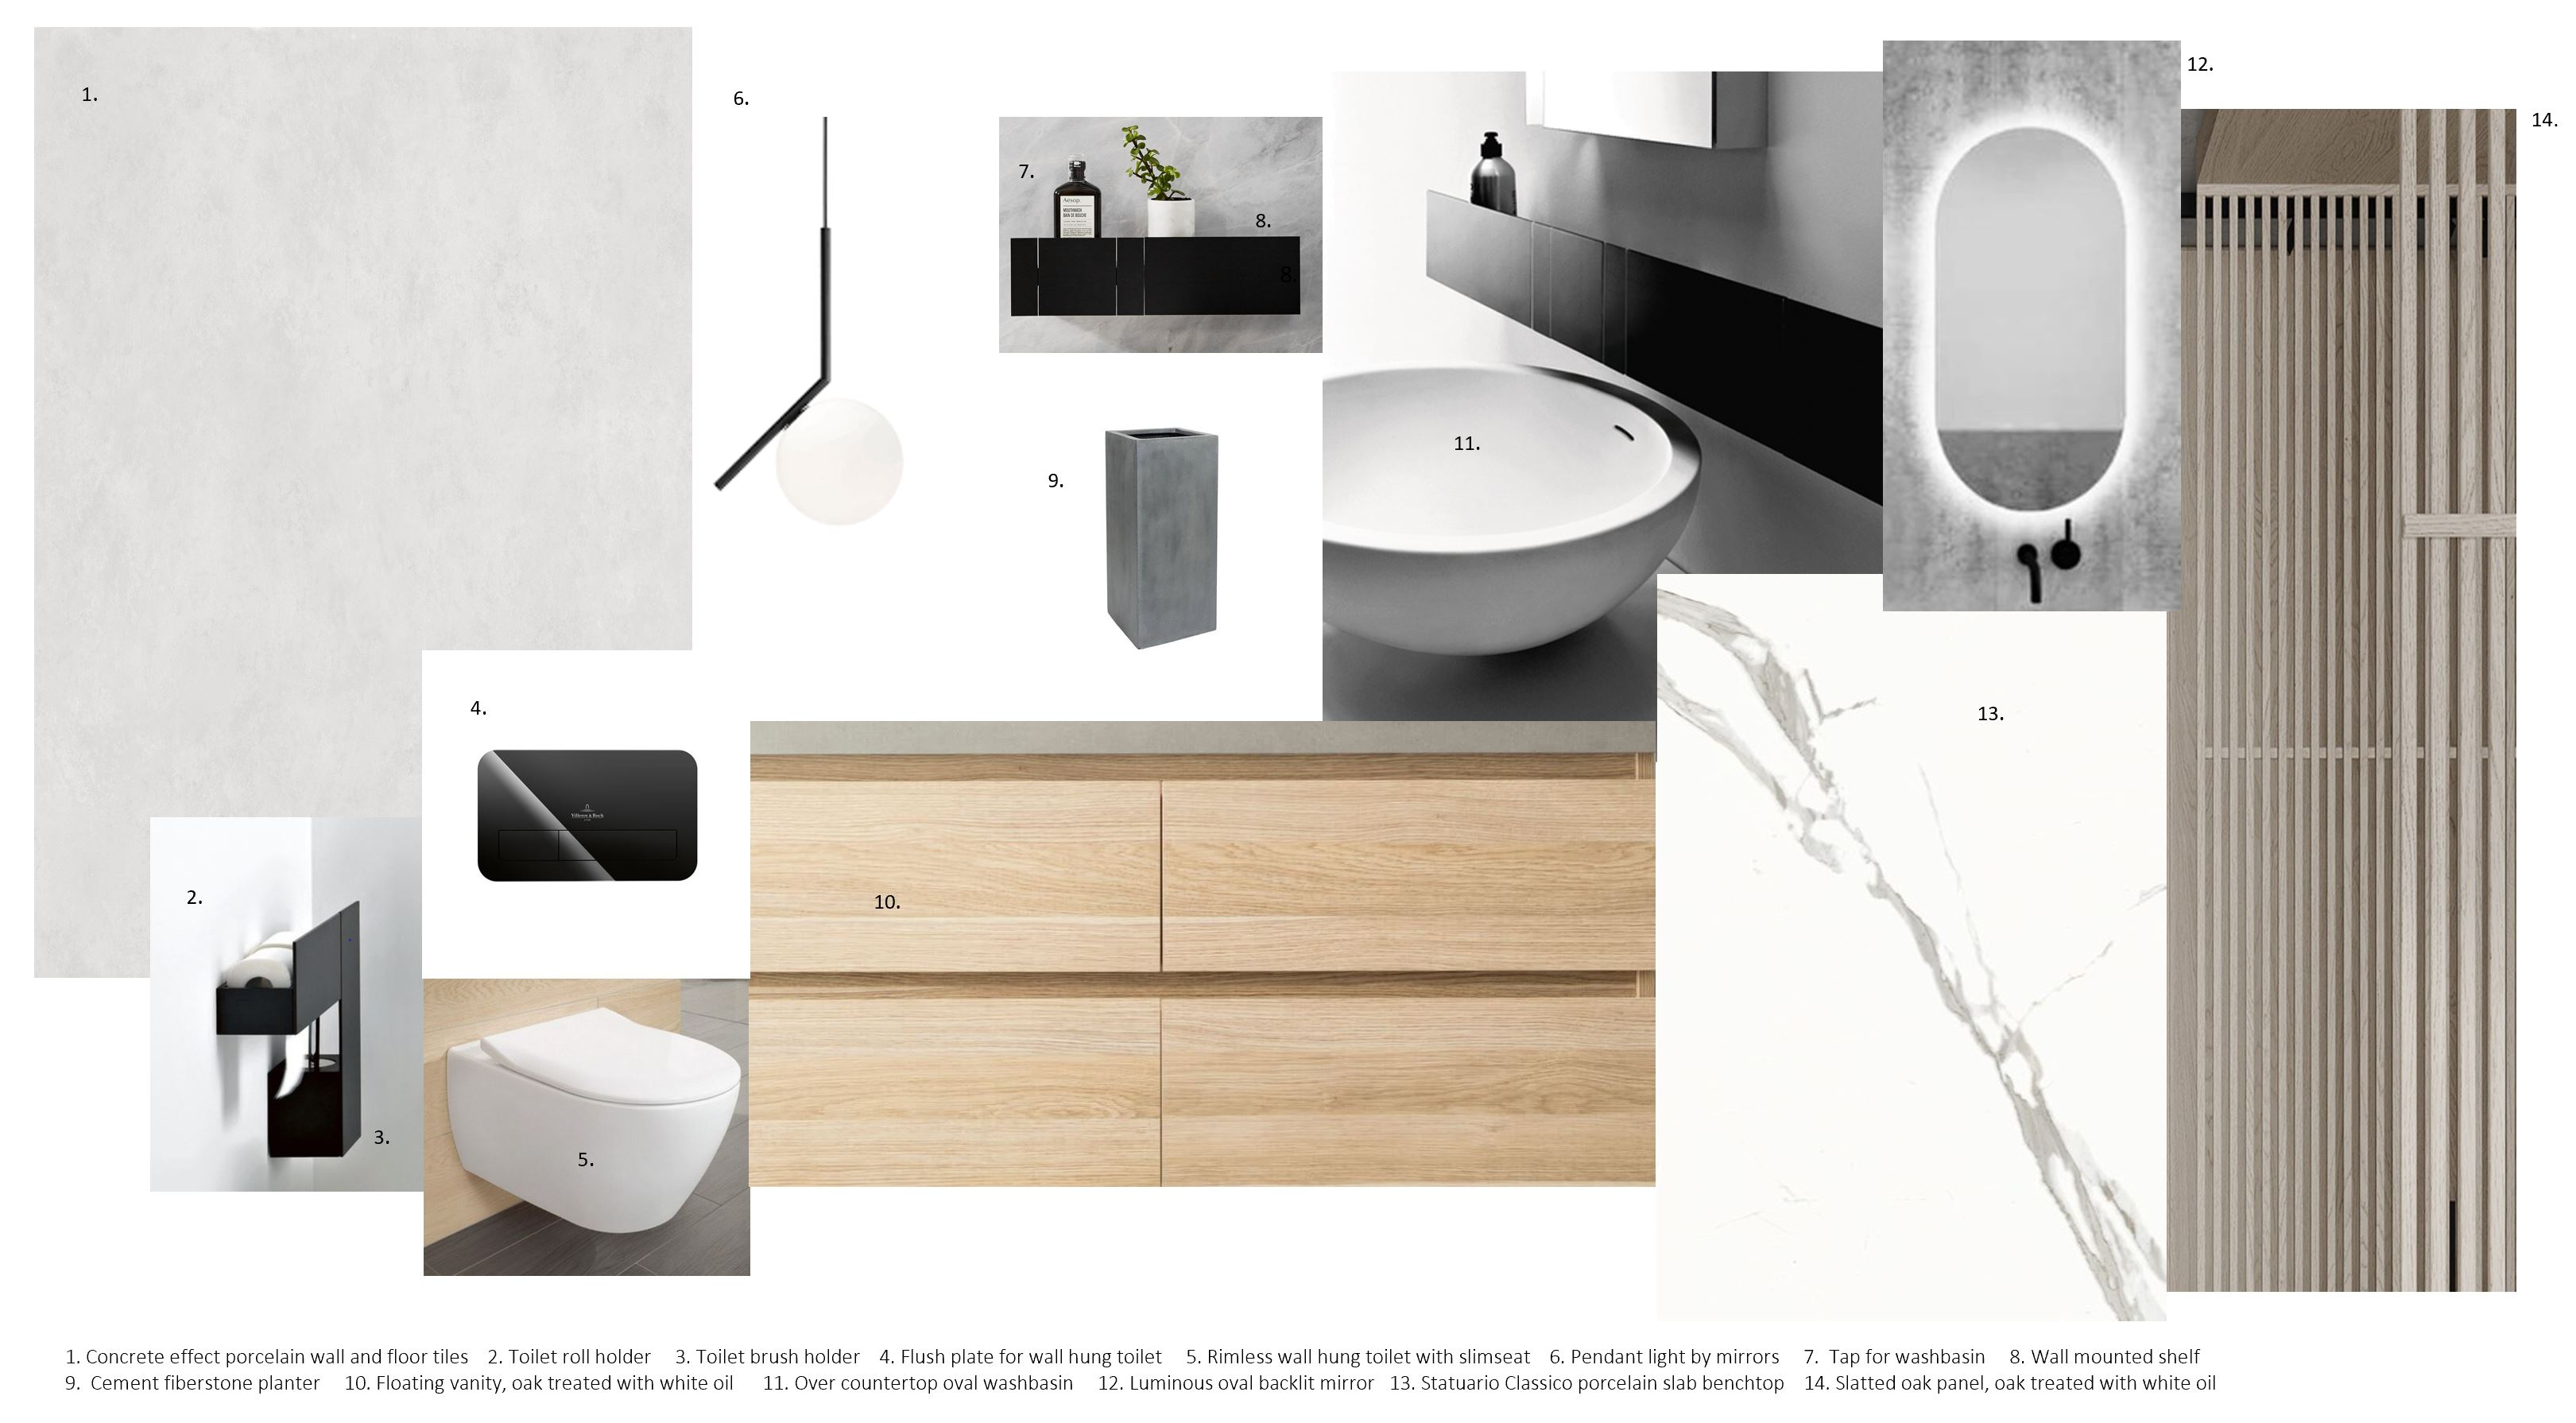 A moodboard of designs for a bathroom space by Triinu Oll